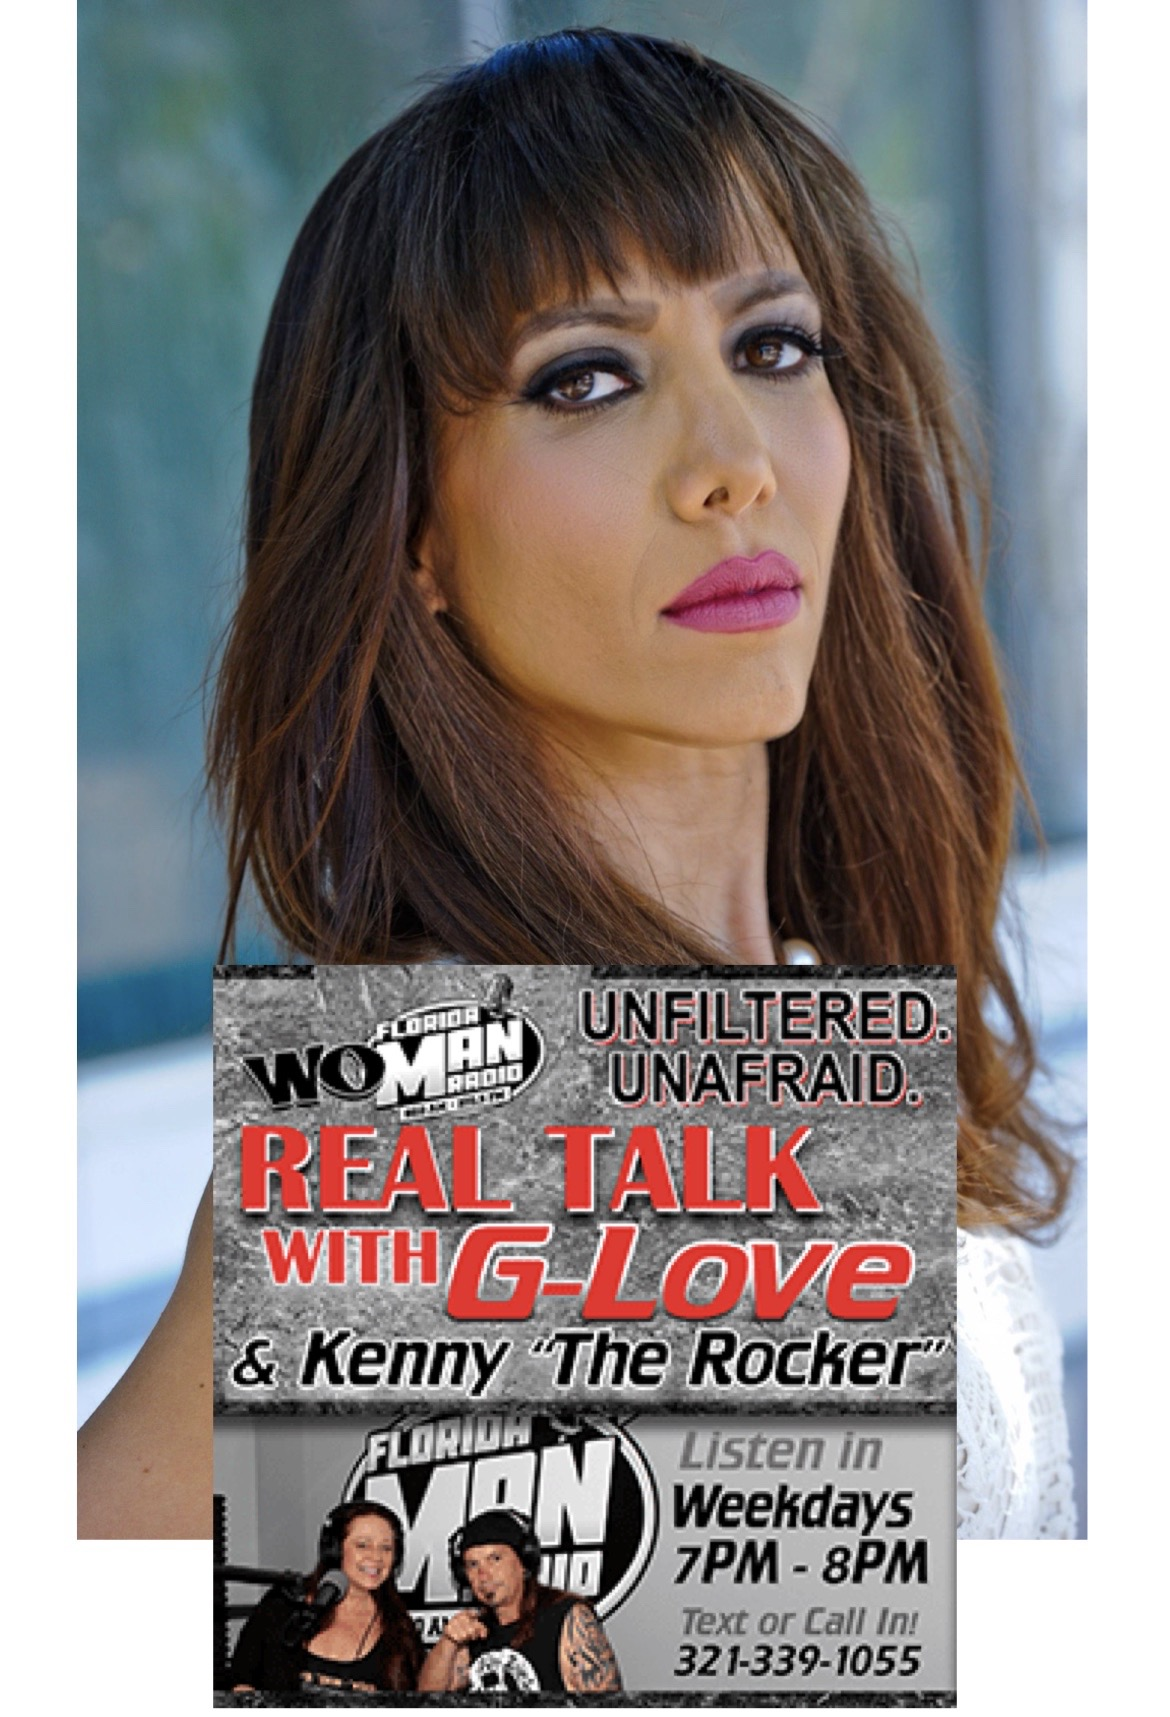 Orlando's Florida Man Radio Invites Actress Jessica Ross For a Live Interview Friday, August 14th